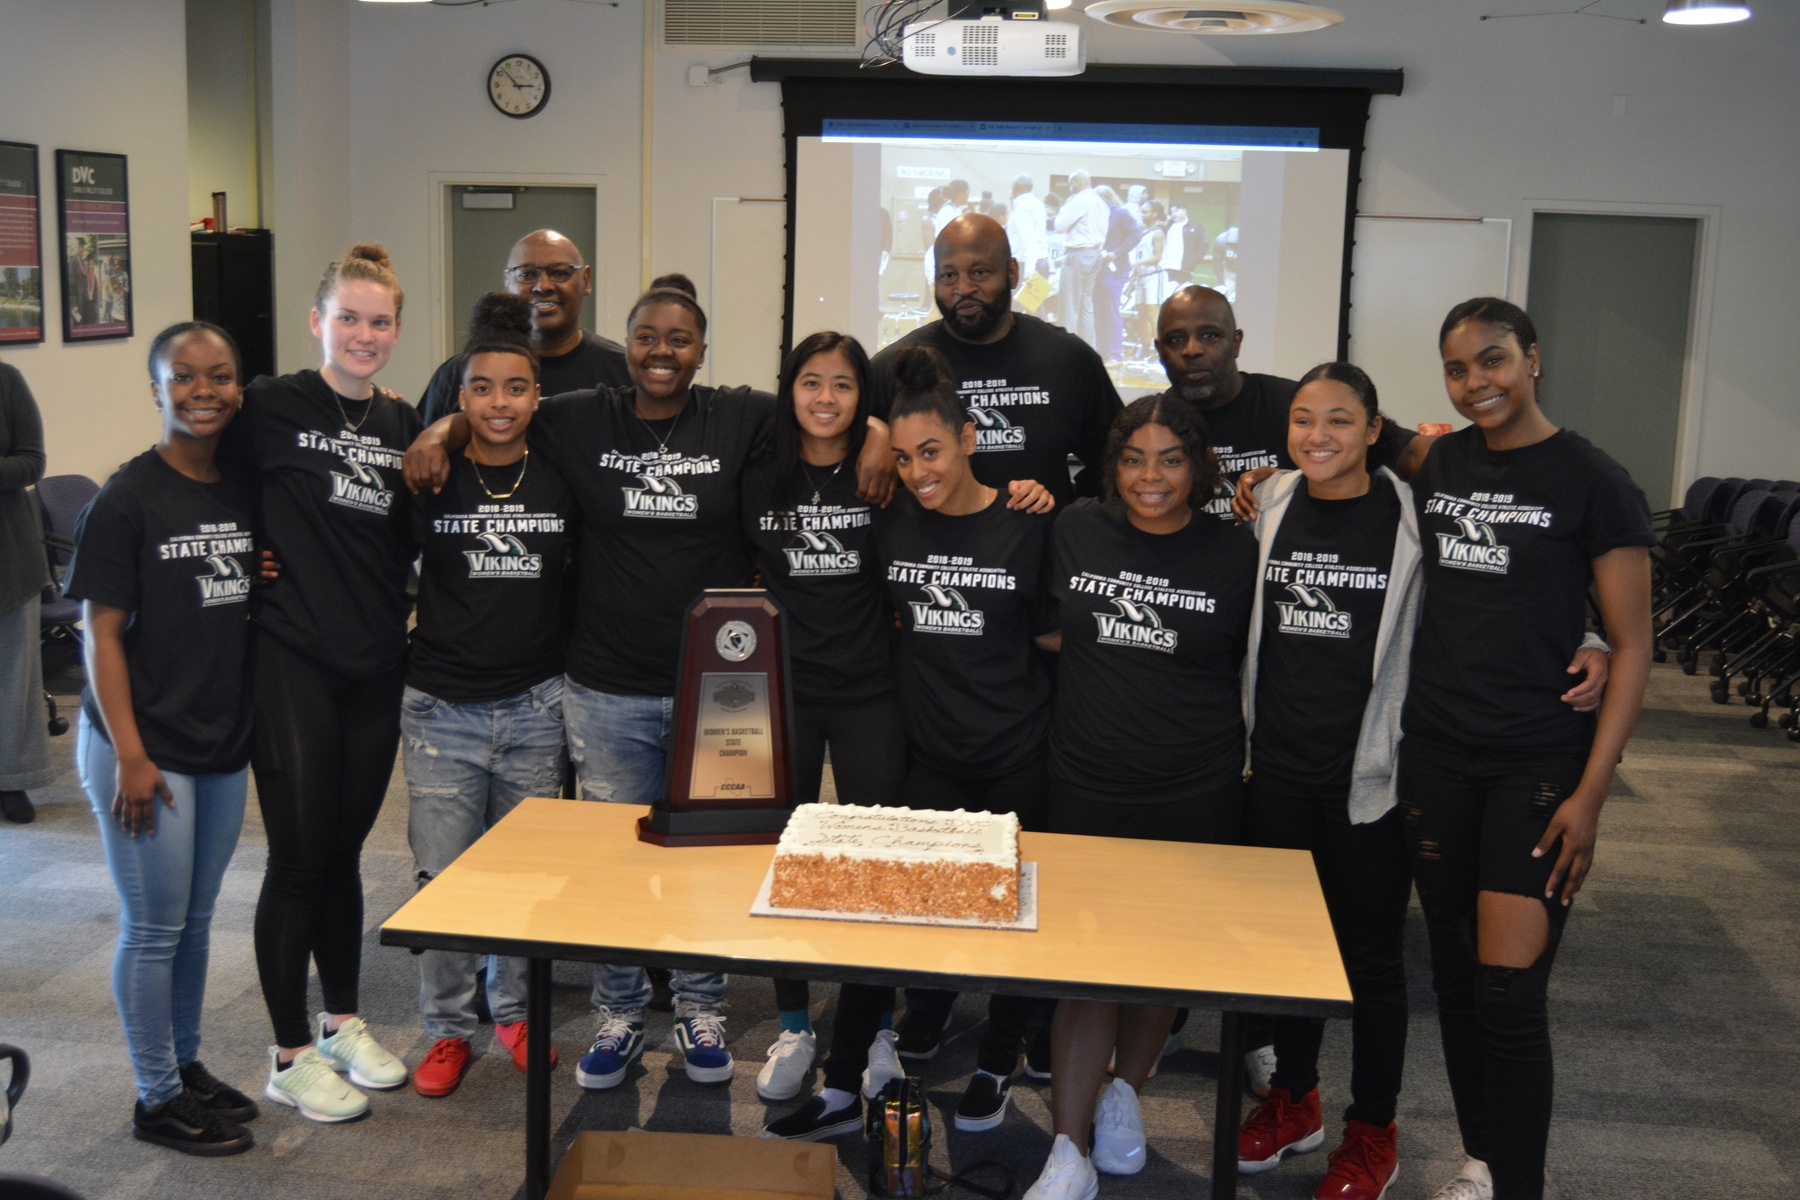 WBB State Championship Recognition Event Photos